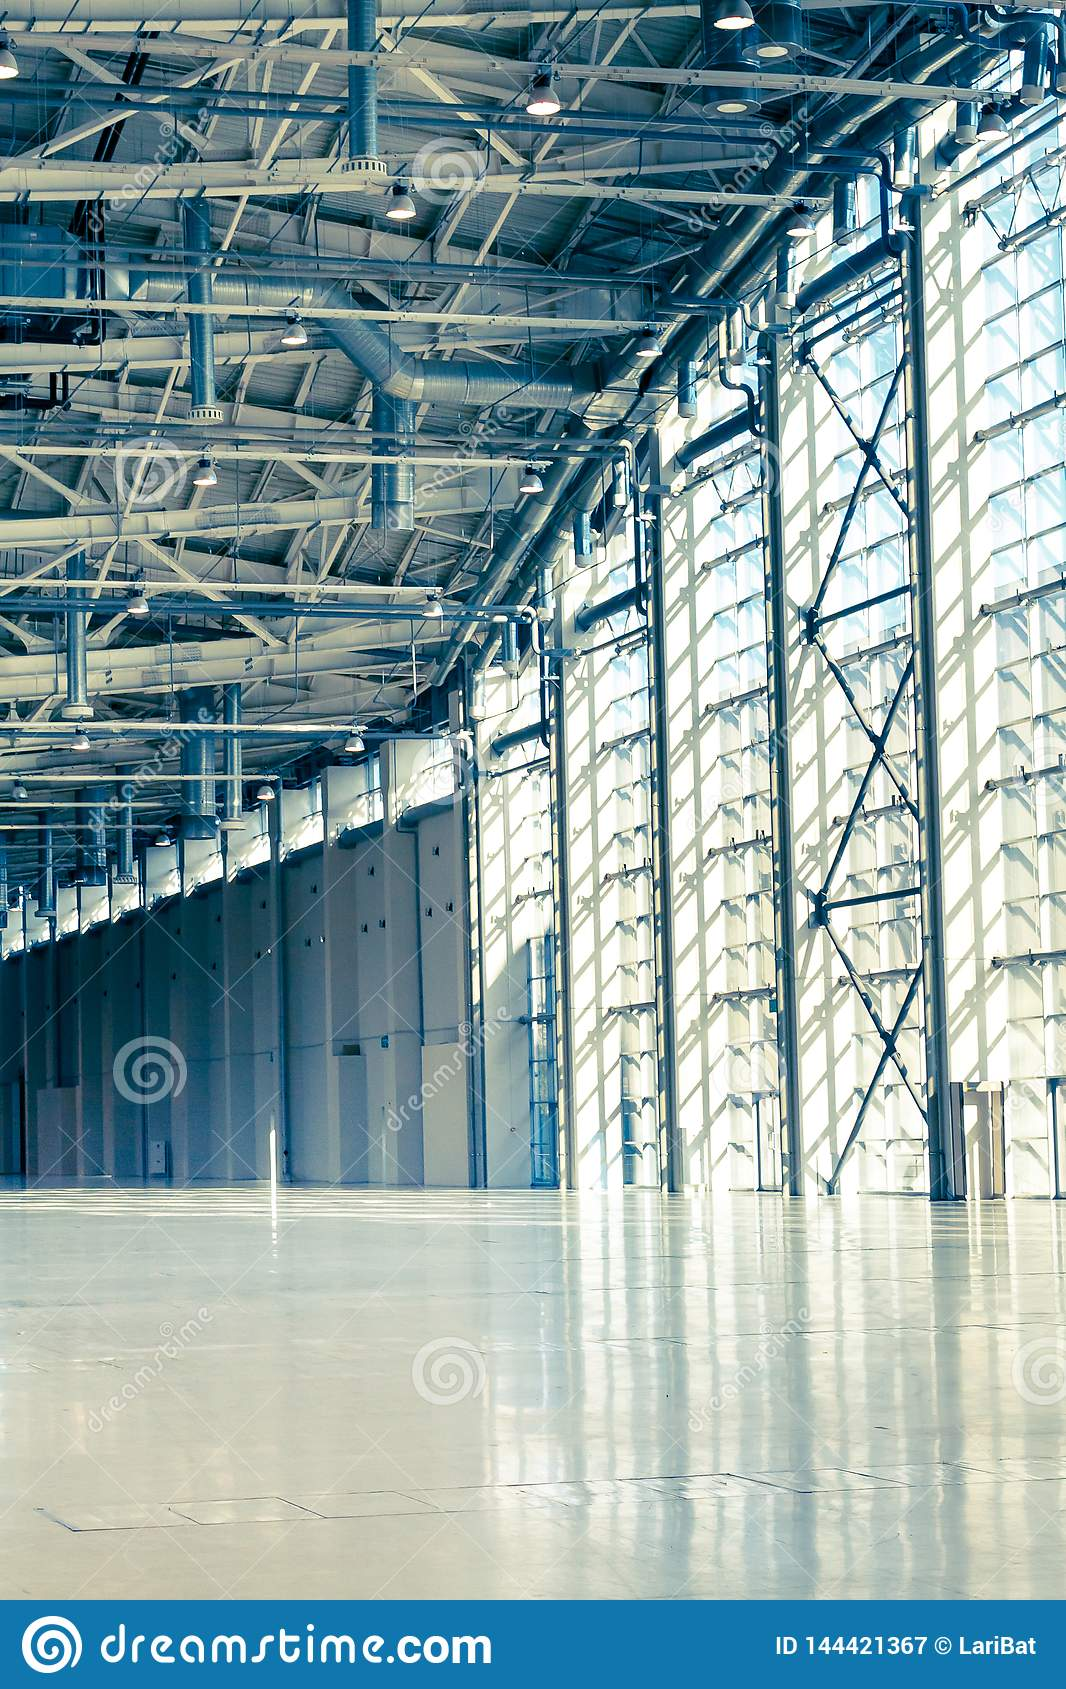 Glass windows, doors in commercial real estate